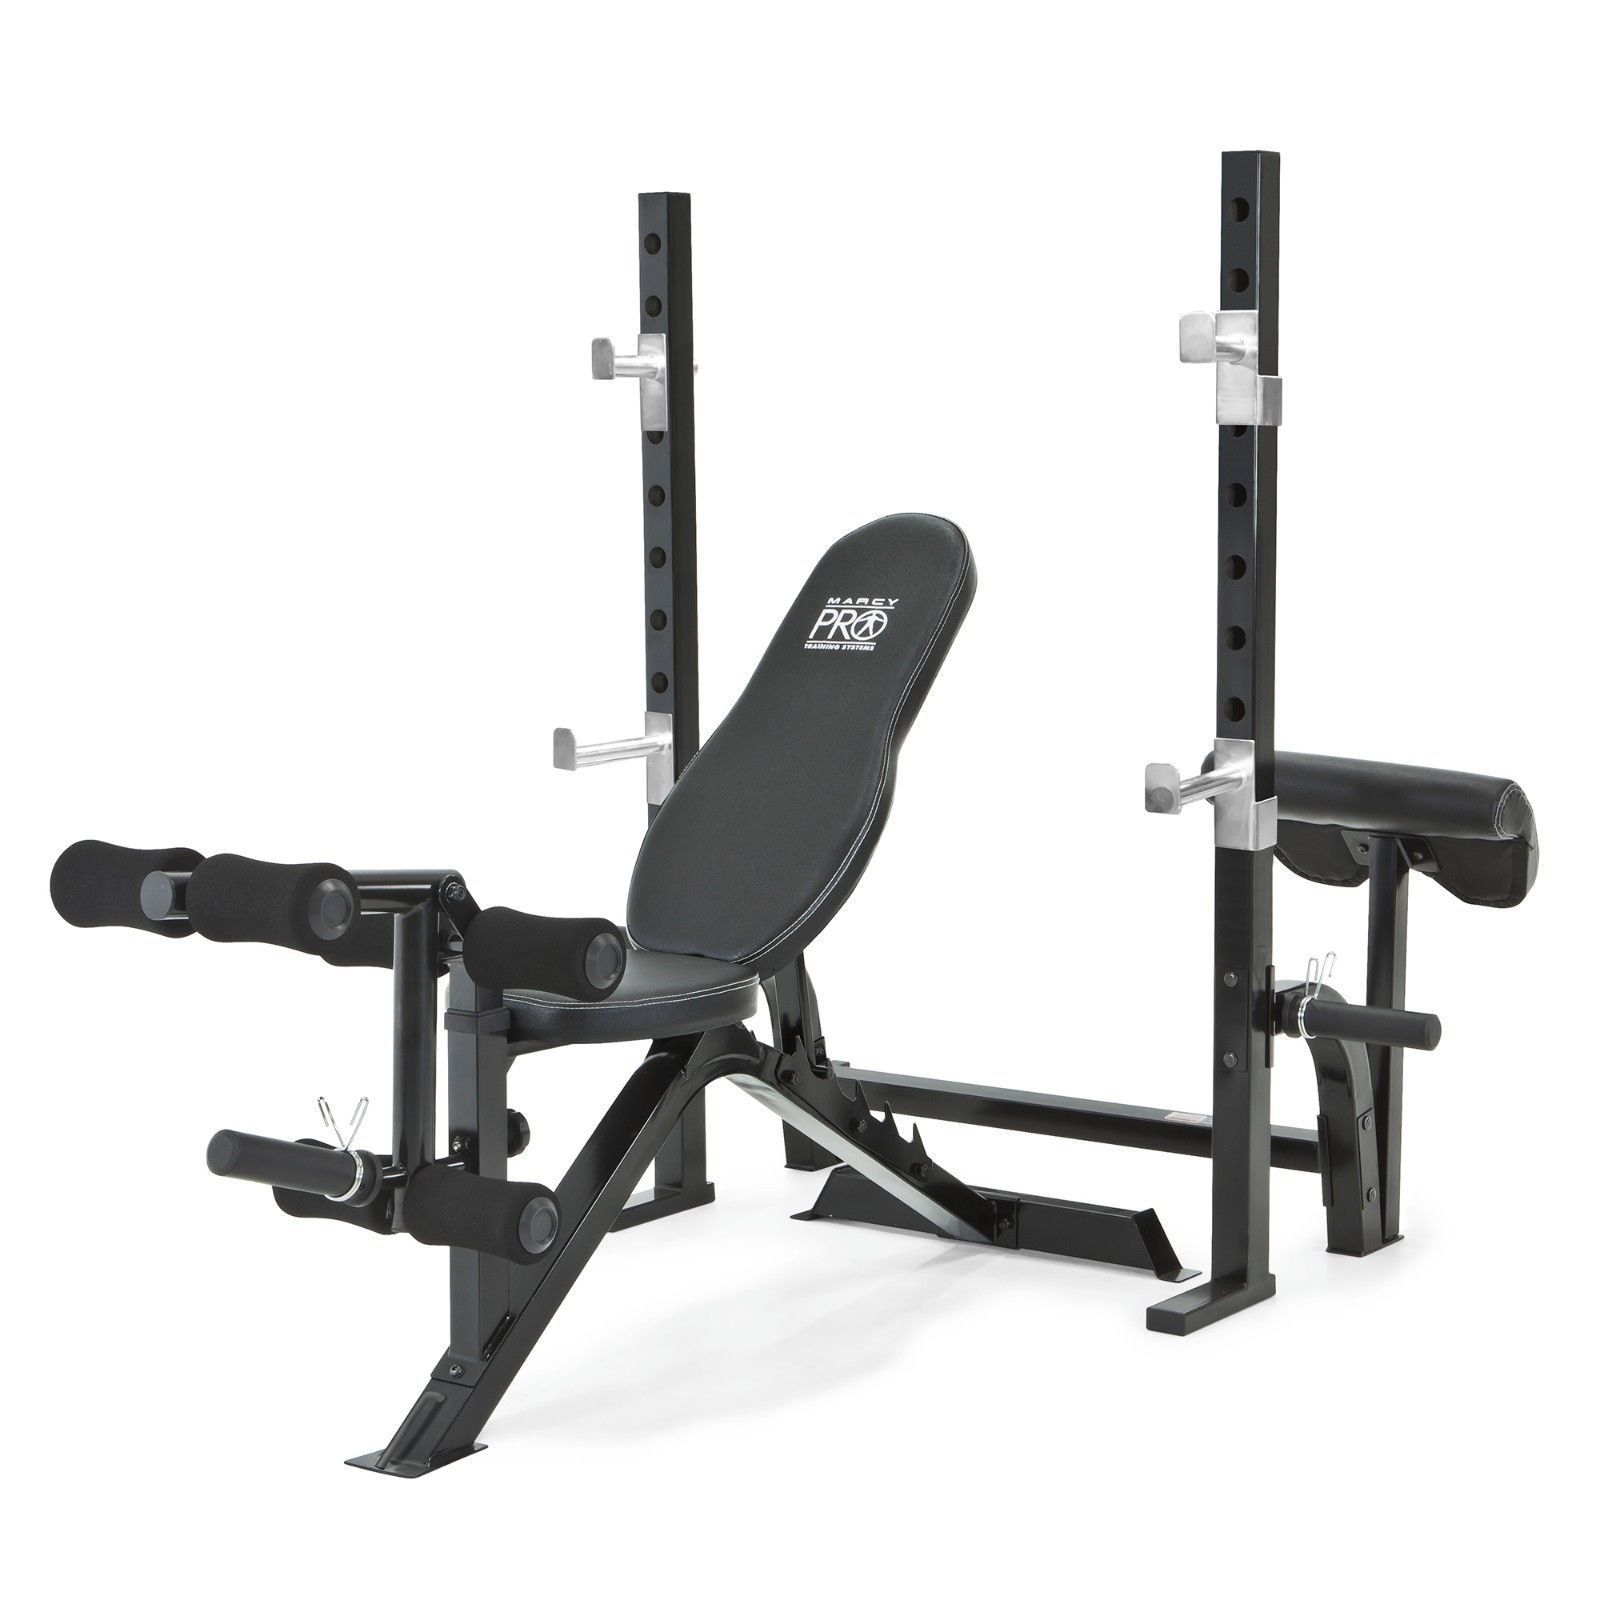 Marcy Pro 2pc Olympic Bench And Squat Rack Pm 842 W